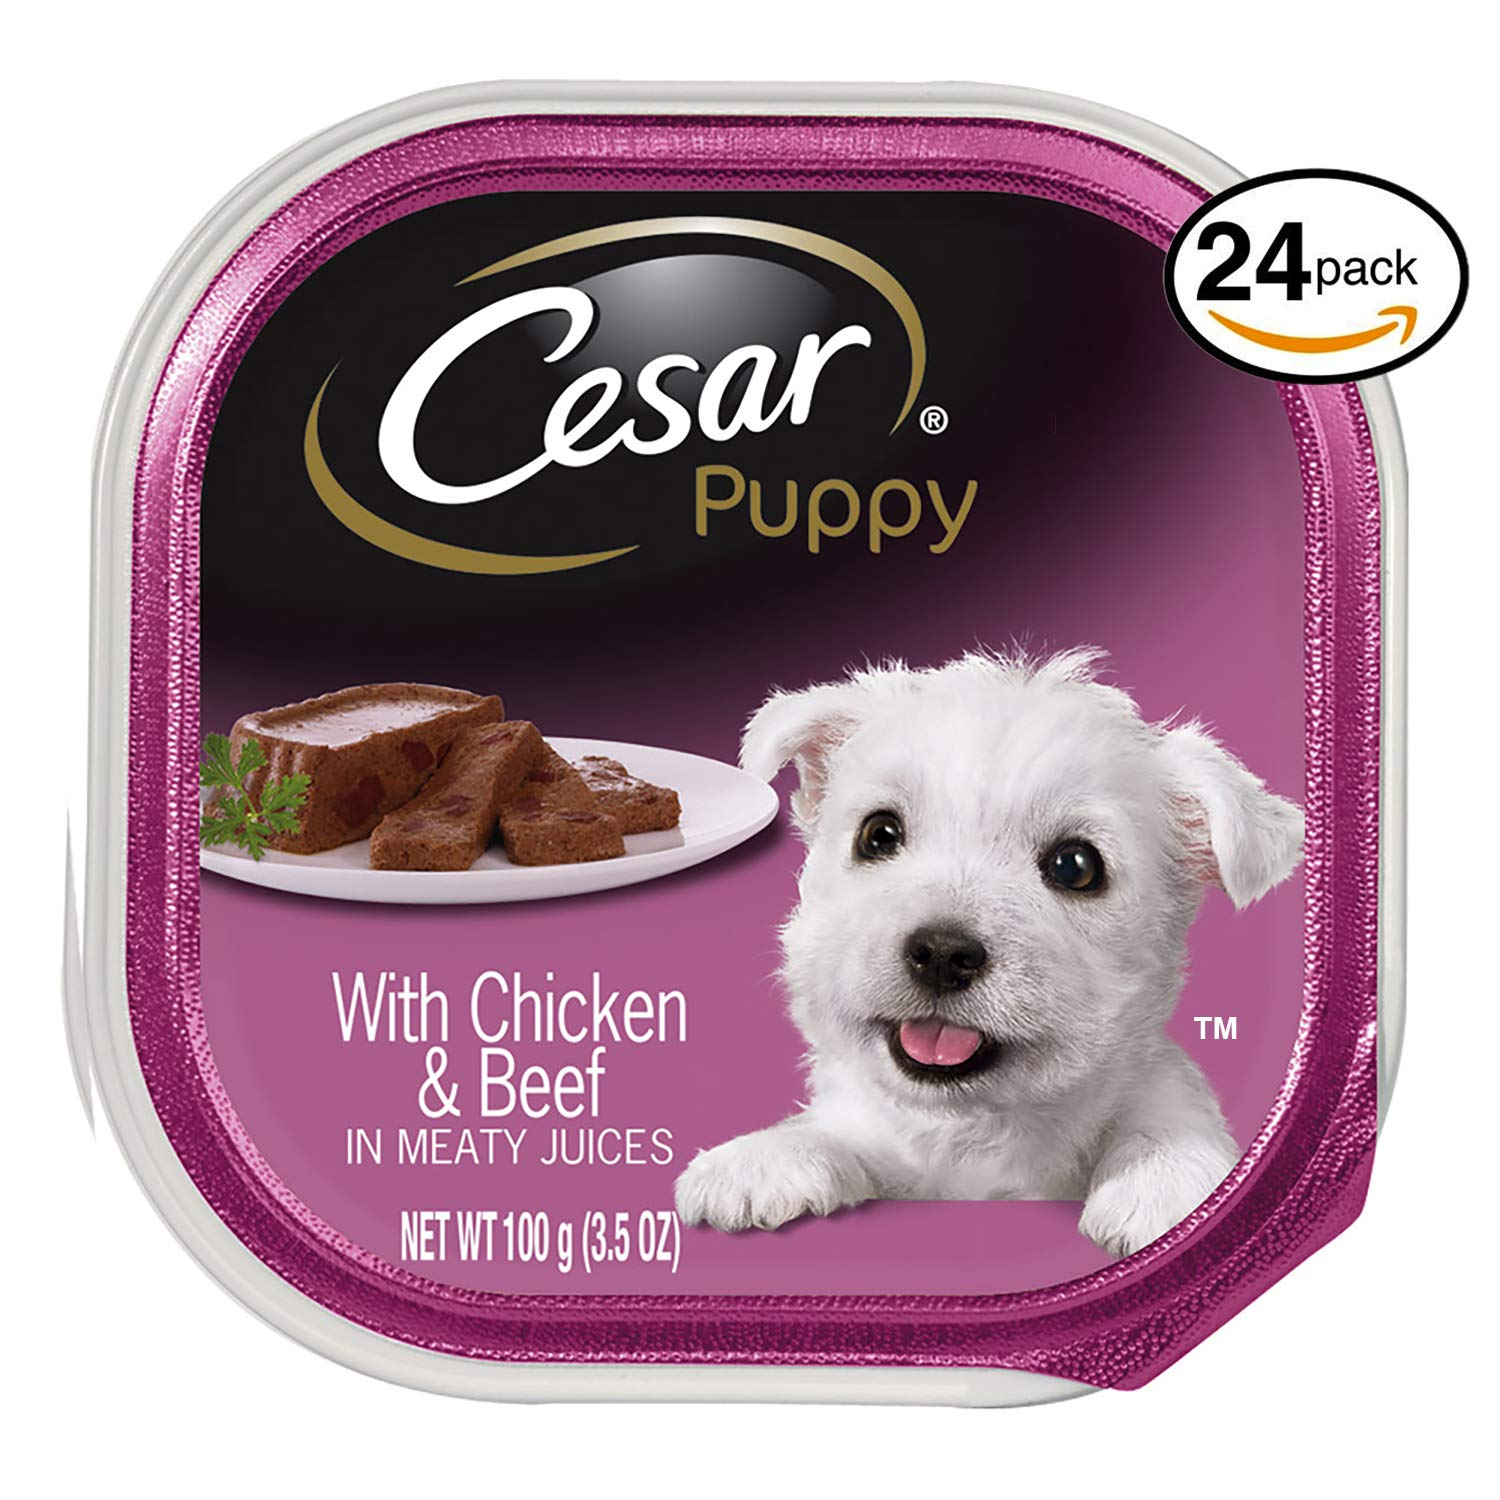 Cesar canine cuisine puppy wet dog food with chicken and beef pack of 24 3 5 23100026077 ebay - Cuisine cesar ...